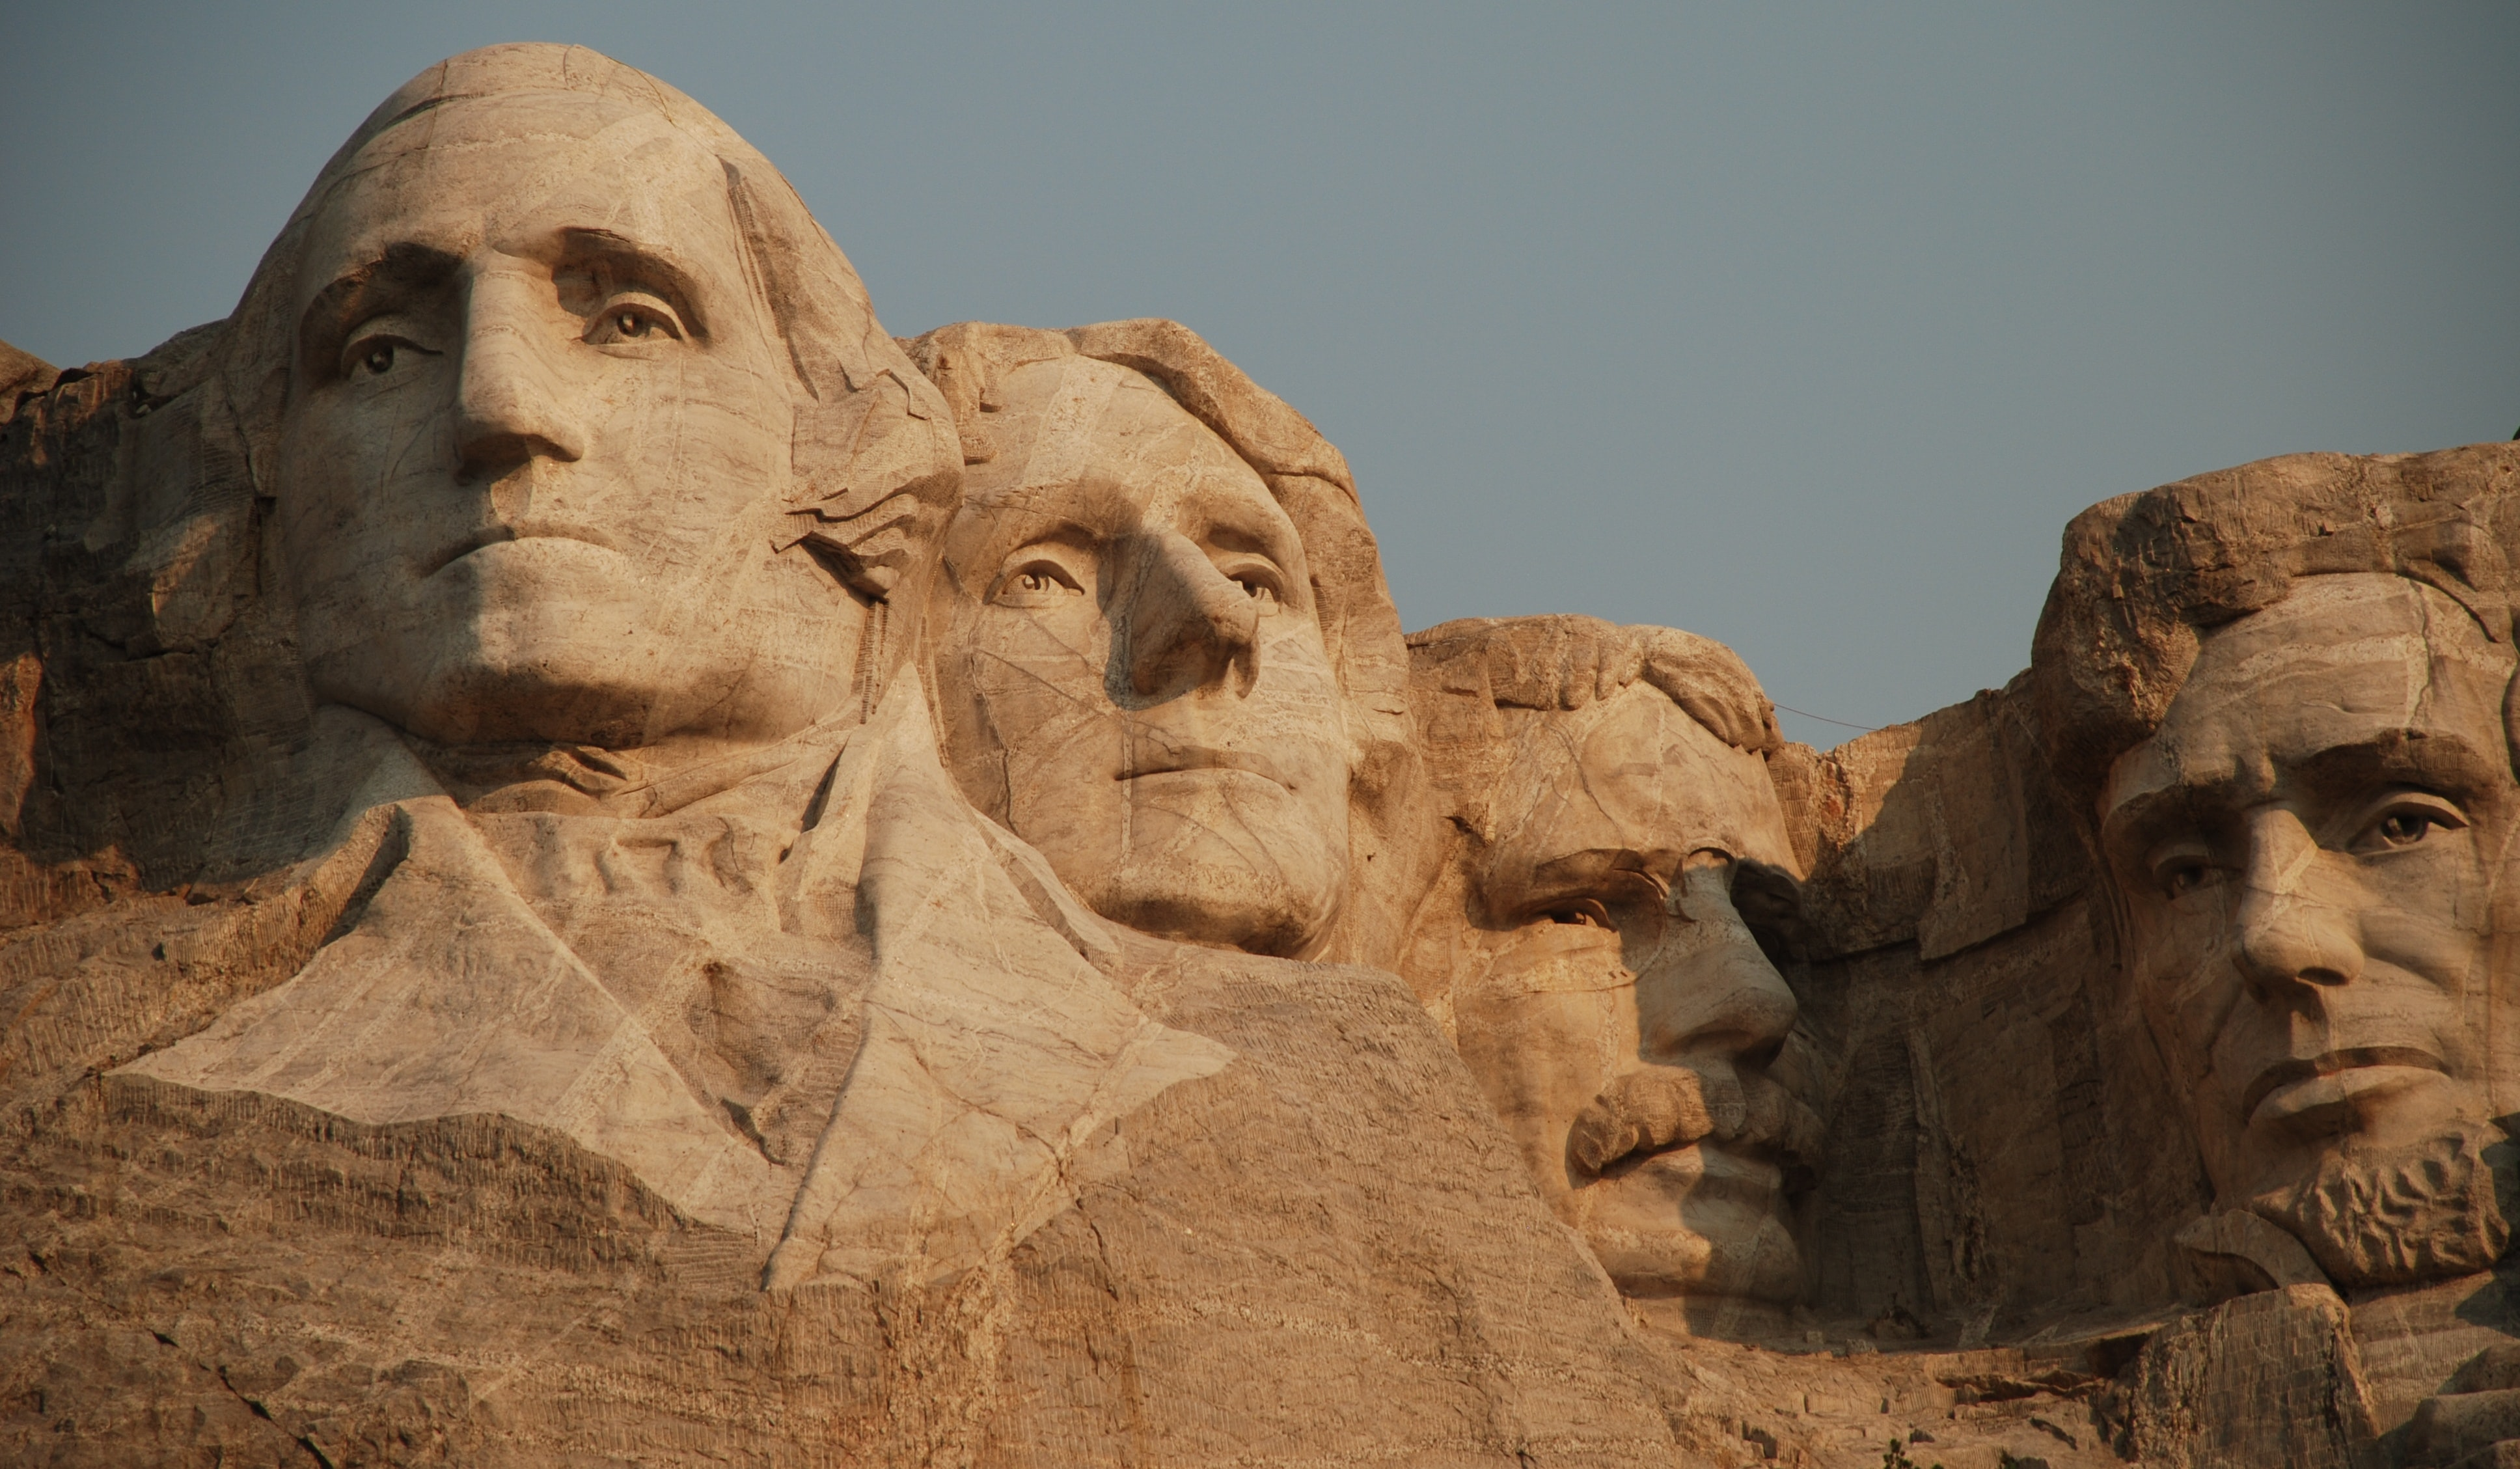 Daytime shot of stone Mount Rushmore sculpture in rock